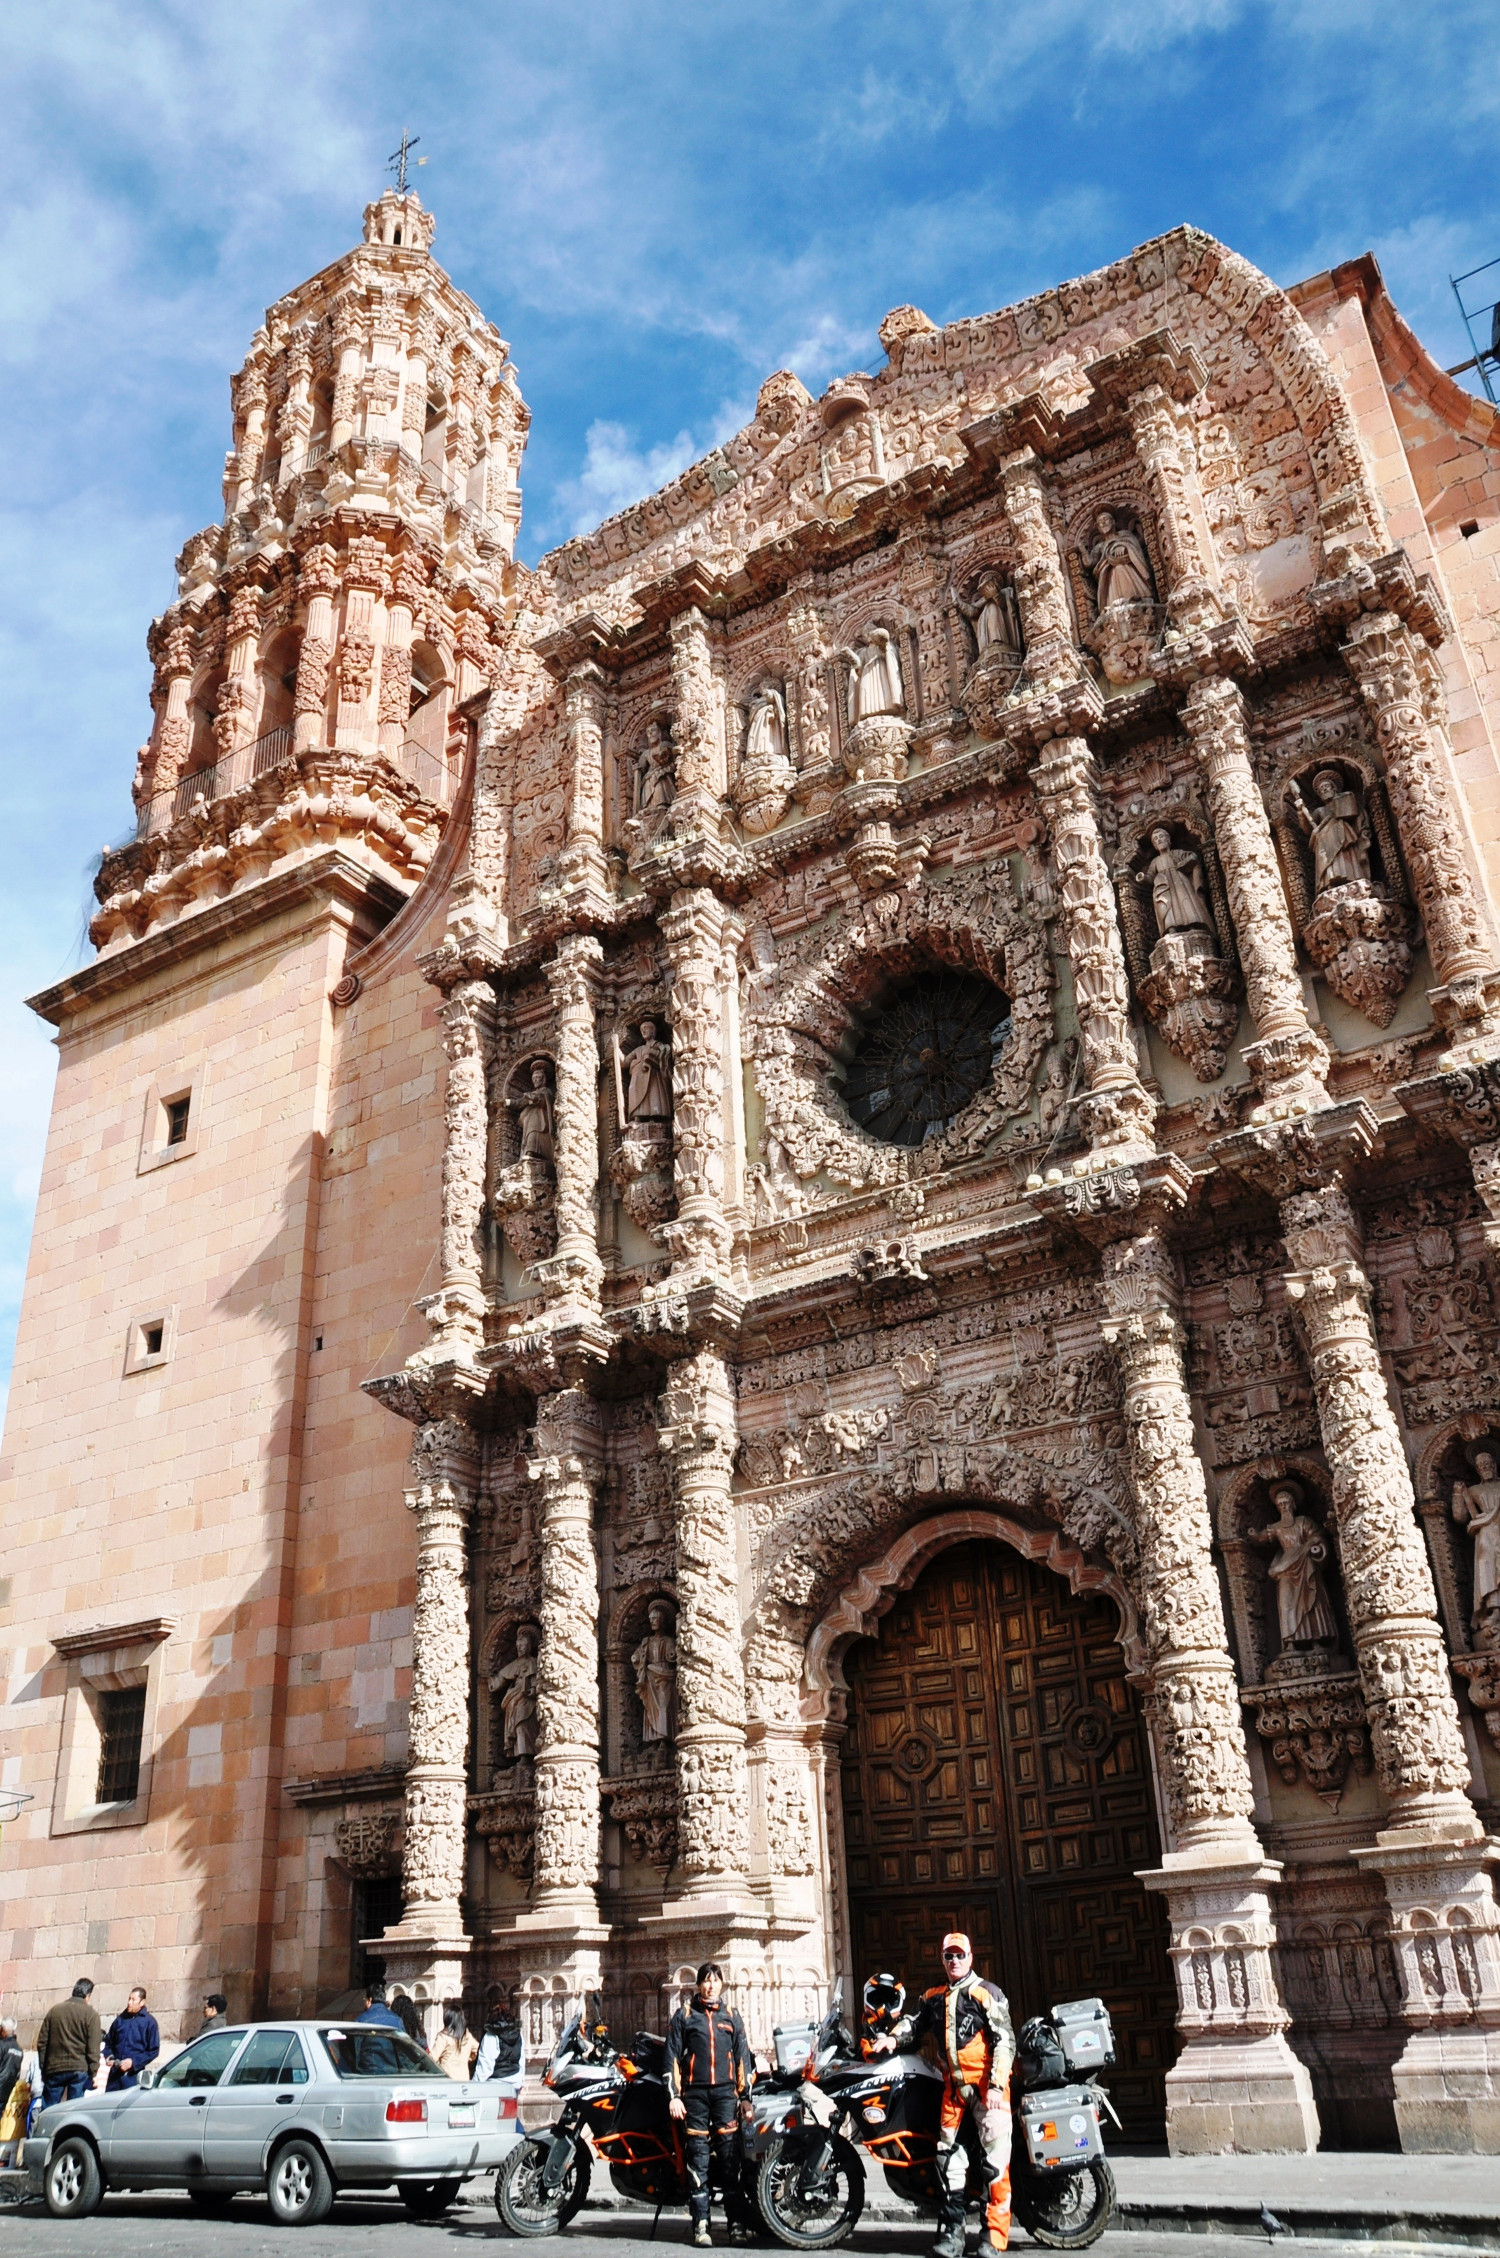 Vor der verschnörkelten Kathedrale von Zacatecas | In front of the ornate cathedral in Zacatecas